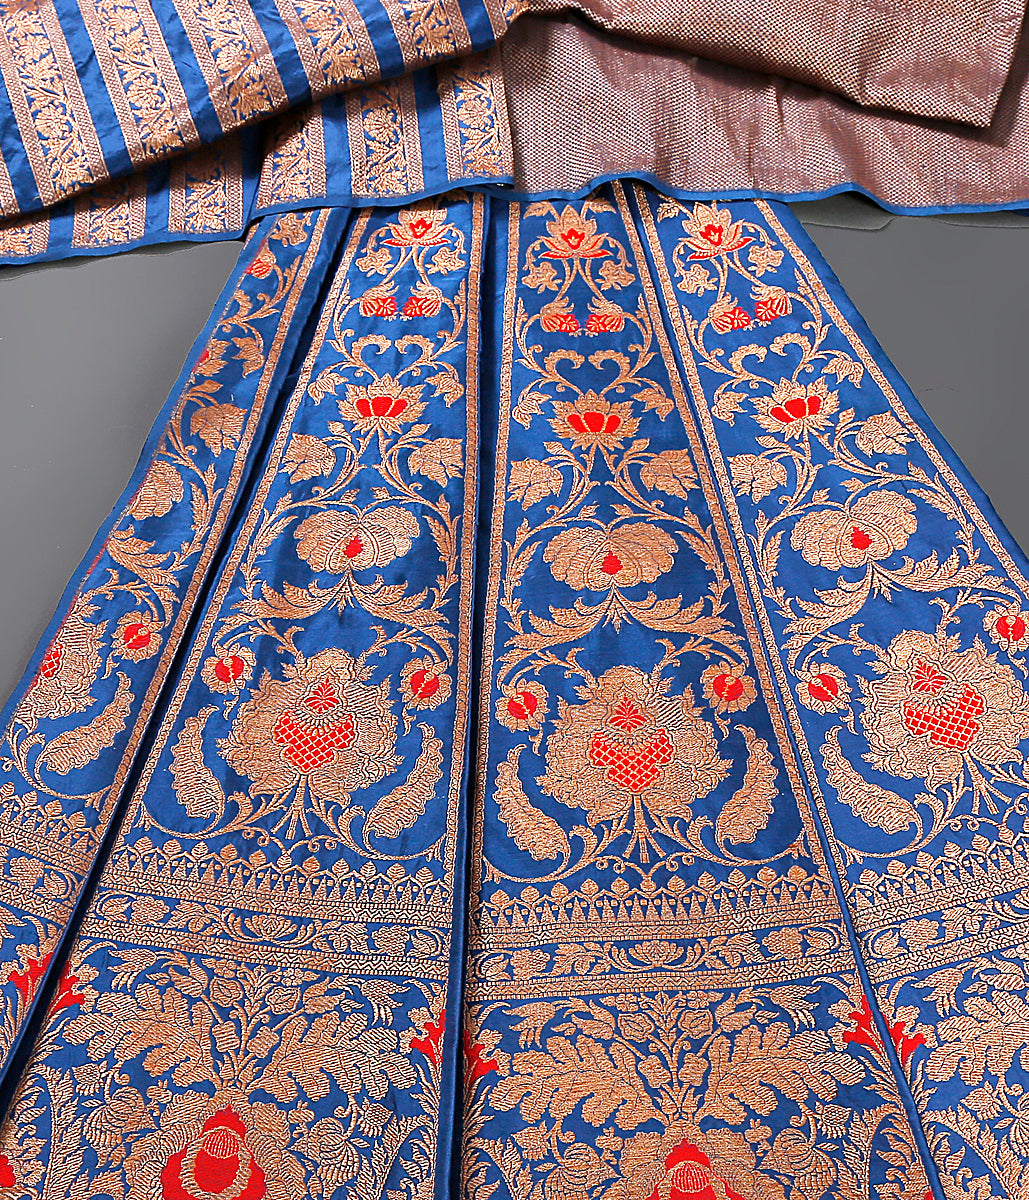 Royal Blue Kadhwa Banarasi Lehenga with meenakari